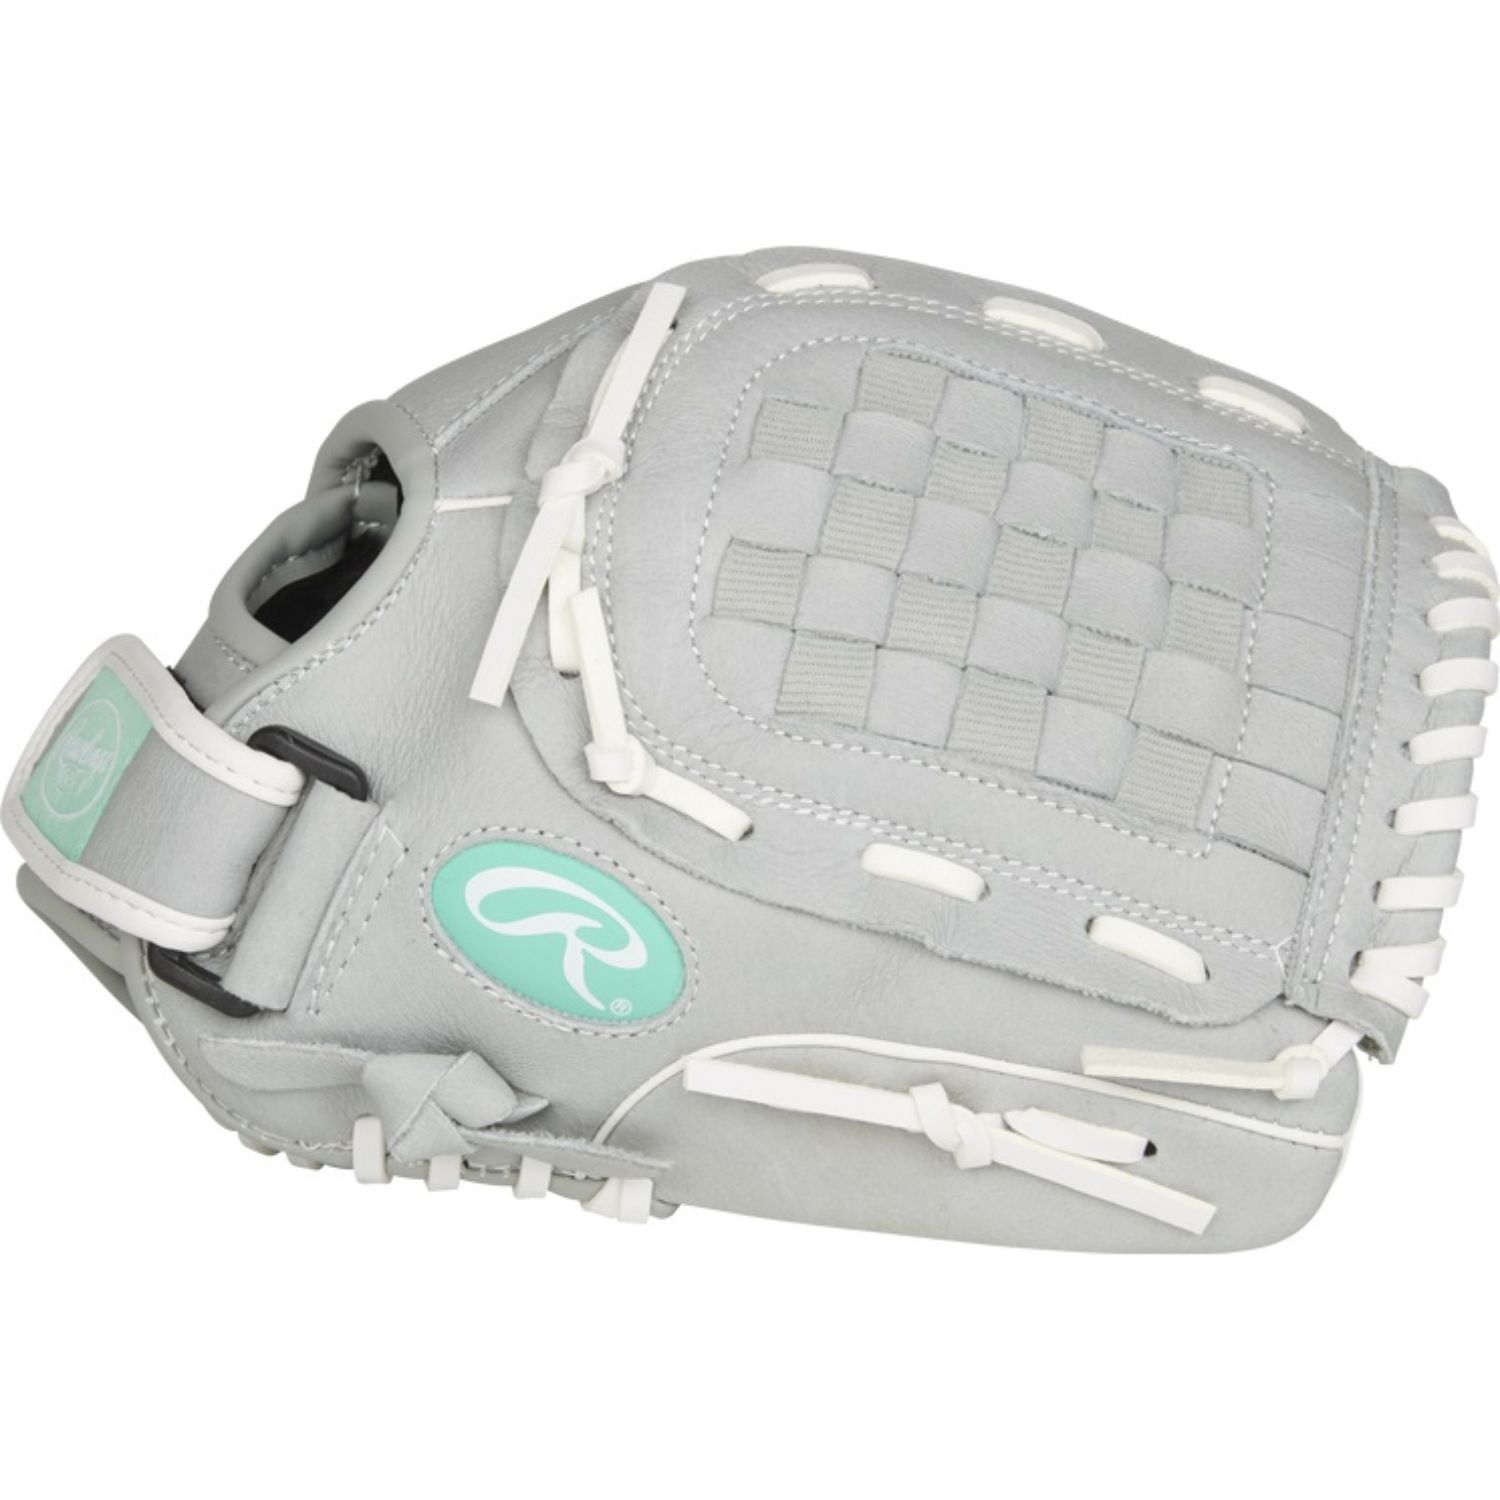 Rawlings Sure Catch 11.5 in Youth Infield Pitchers Glove RH